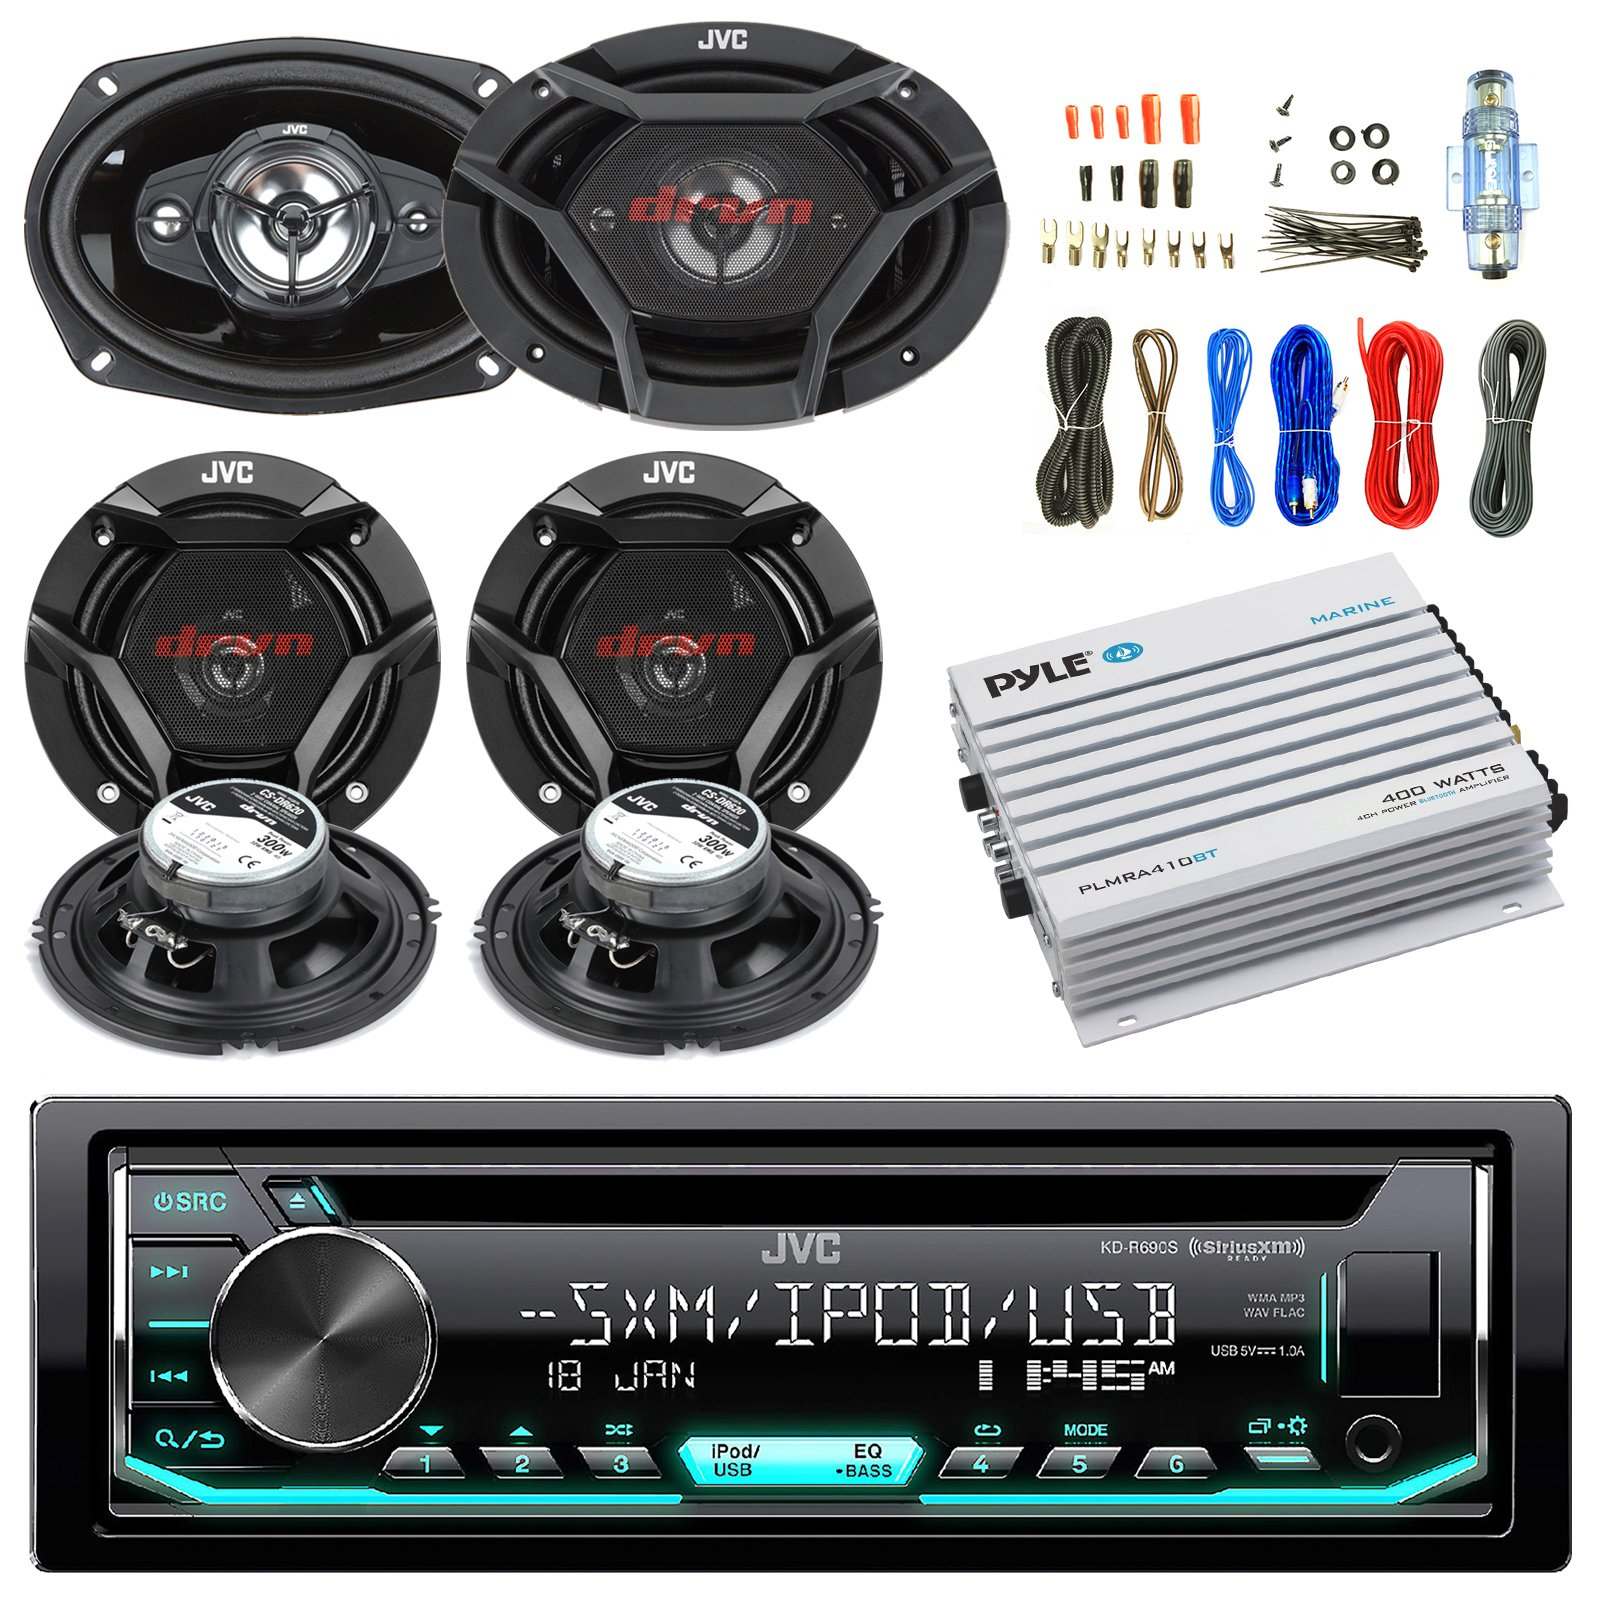 JVC CD/MP3/WMA Receiver Bundle Combo With 2x CSDR6930 6x9'' 3-Way Stereo Coaxial Speakers, 4x CSDR620 6.5'' 2-Way Audio Speaker, 400w 4-Chan Bluetooth Amplifier w/ Enrock Installation Kit